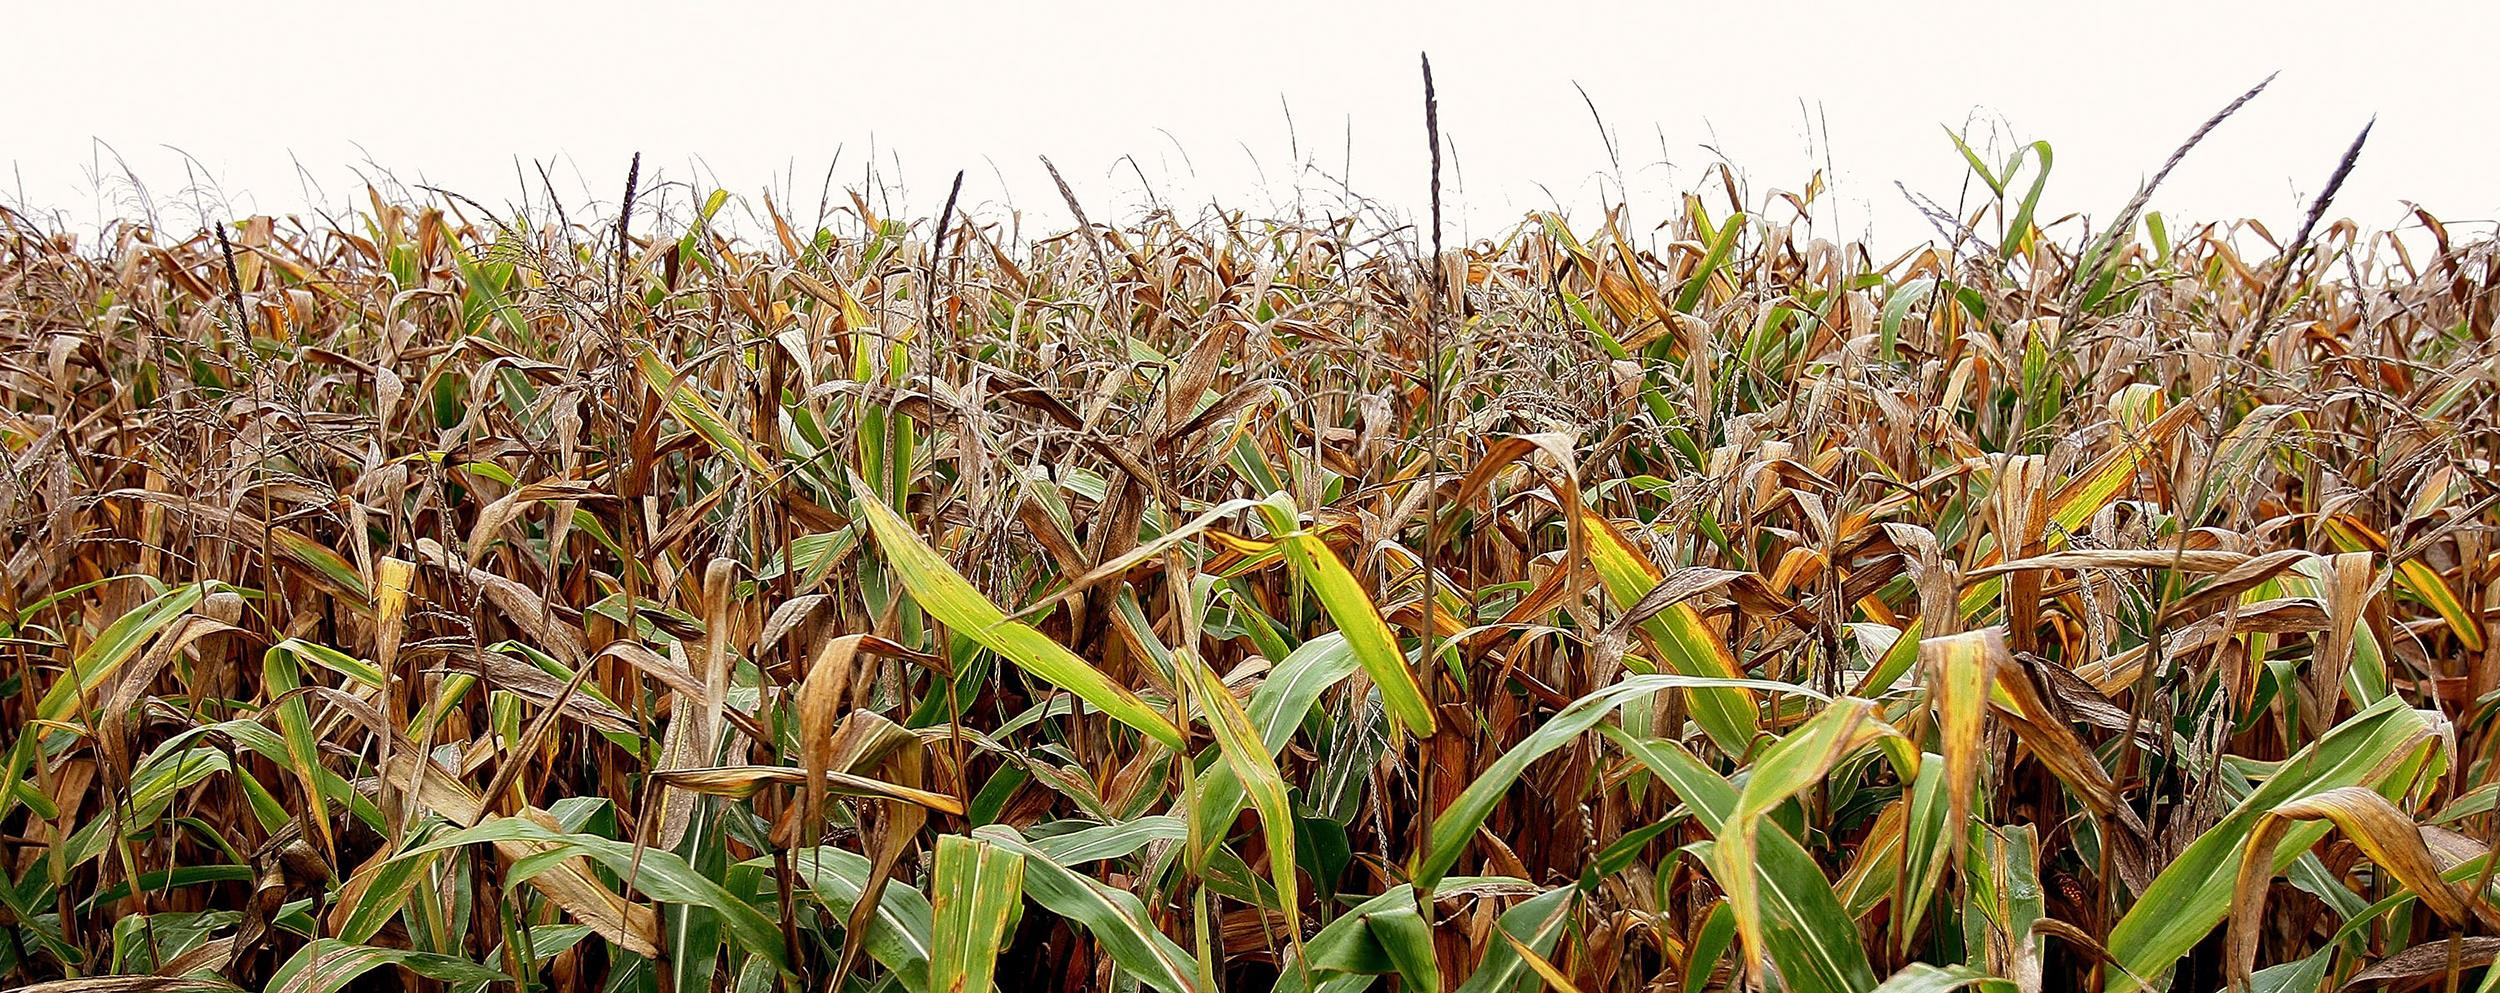 A new reports finds higher levels of carbon dioxide might hurt zinc and iron content of crops like corn.